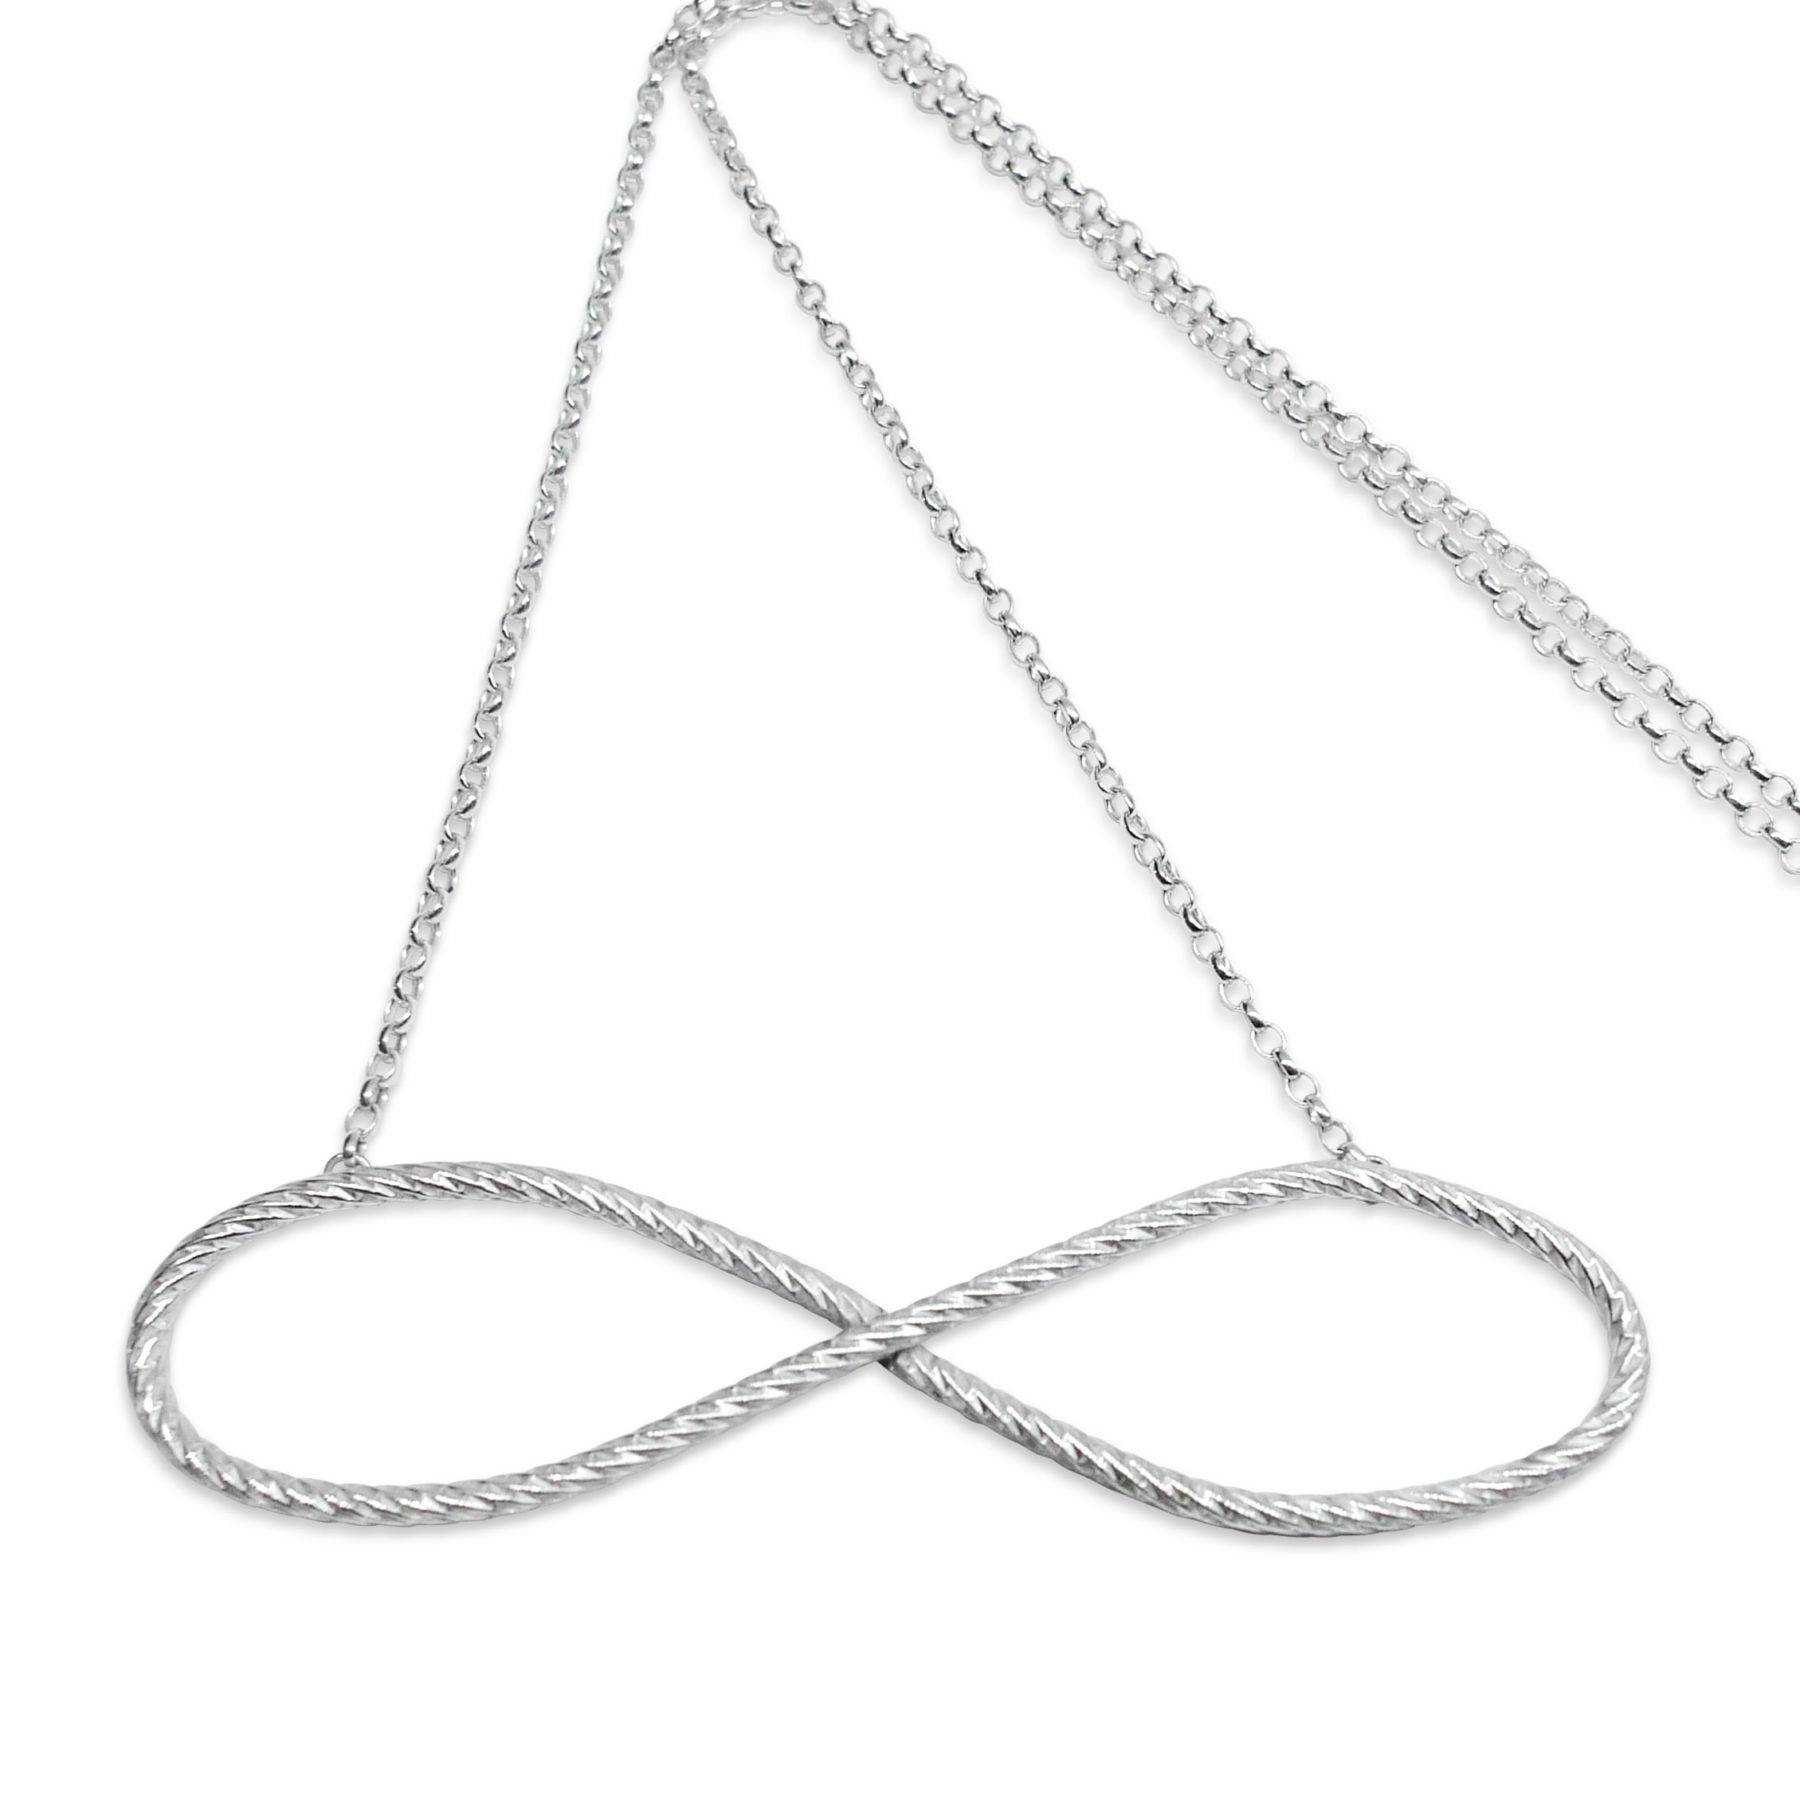 david pendant jewelry enlarged necklace yurman infinity diamond products necklaces